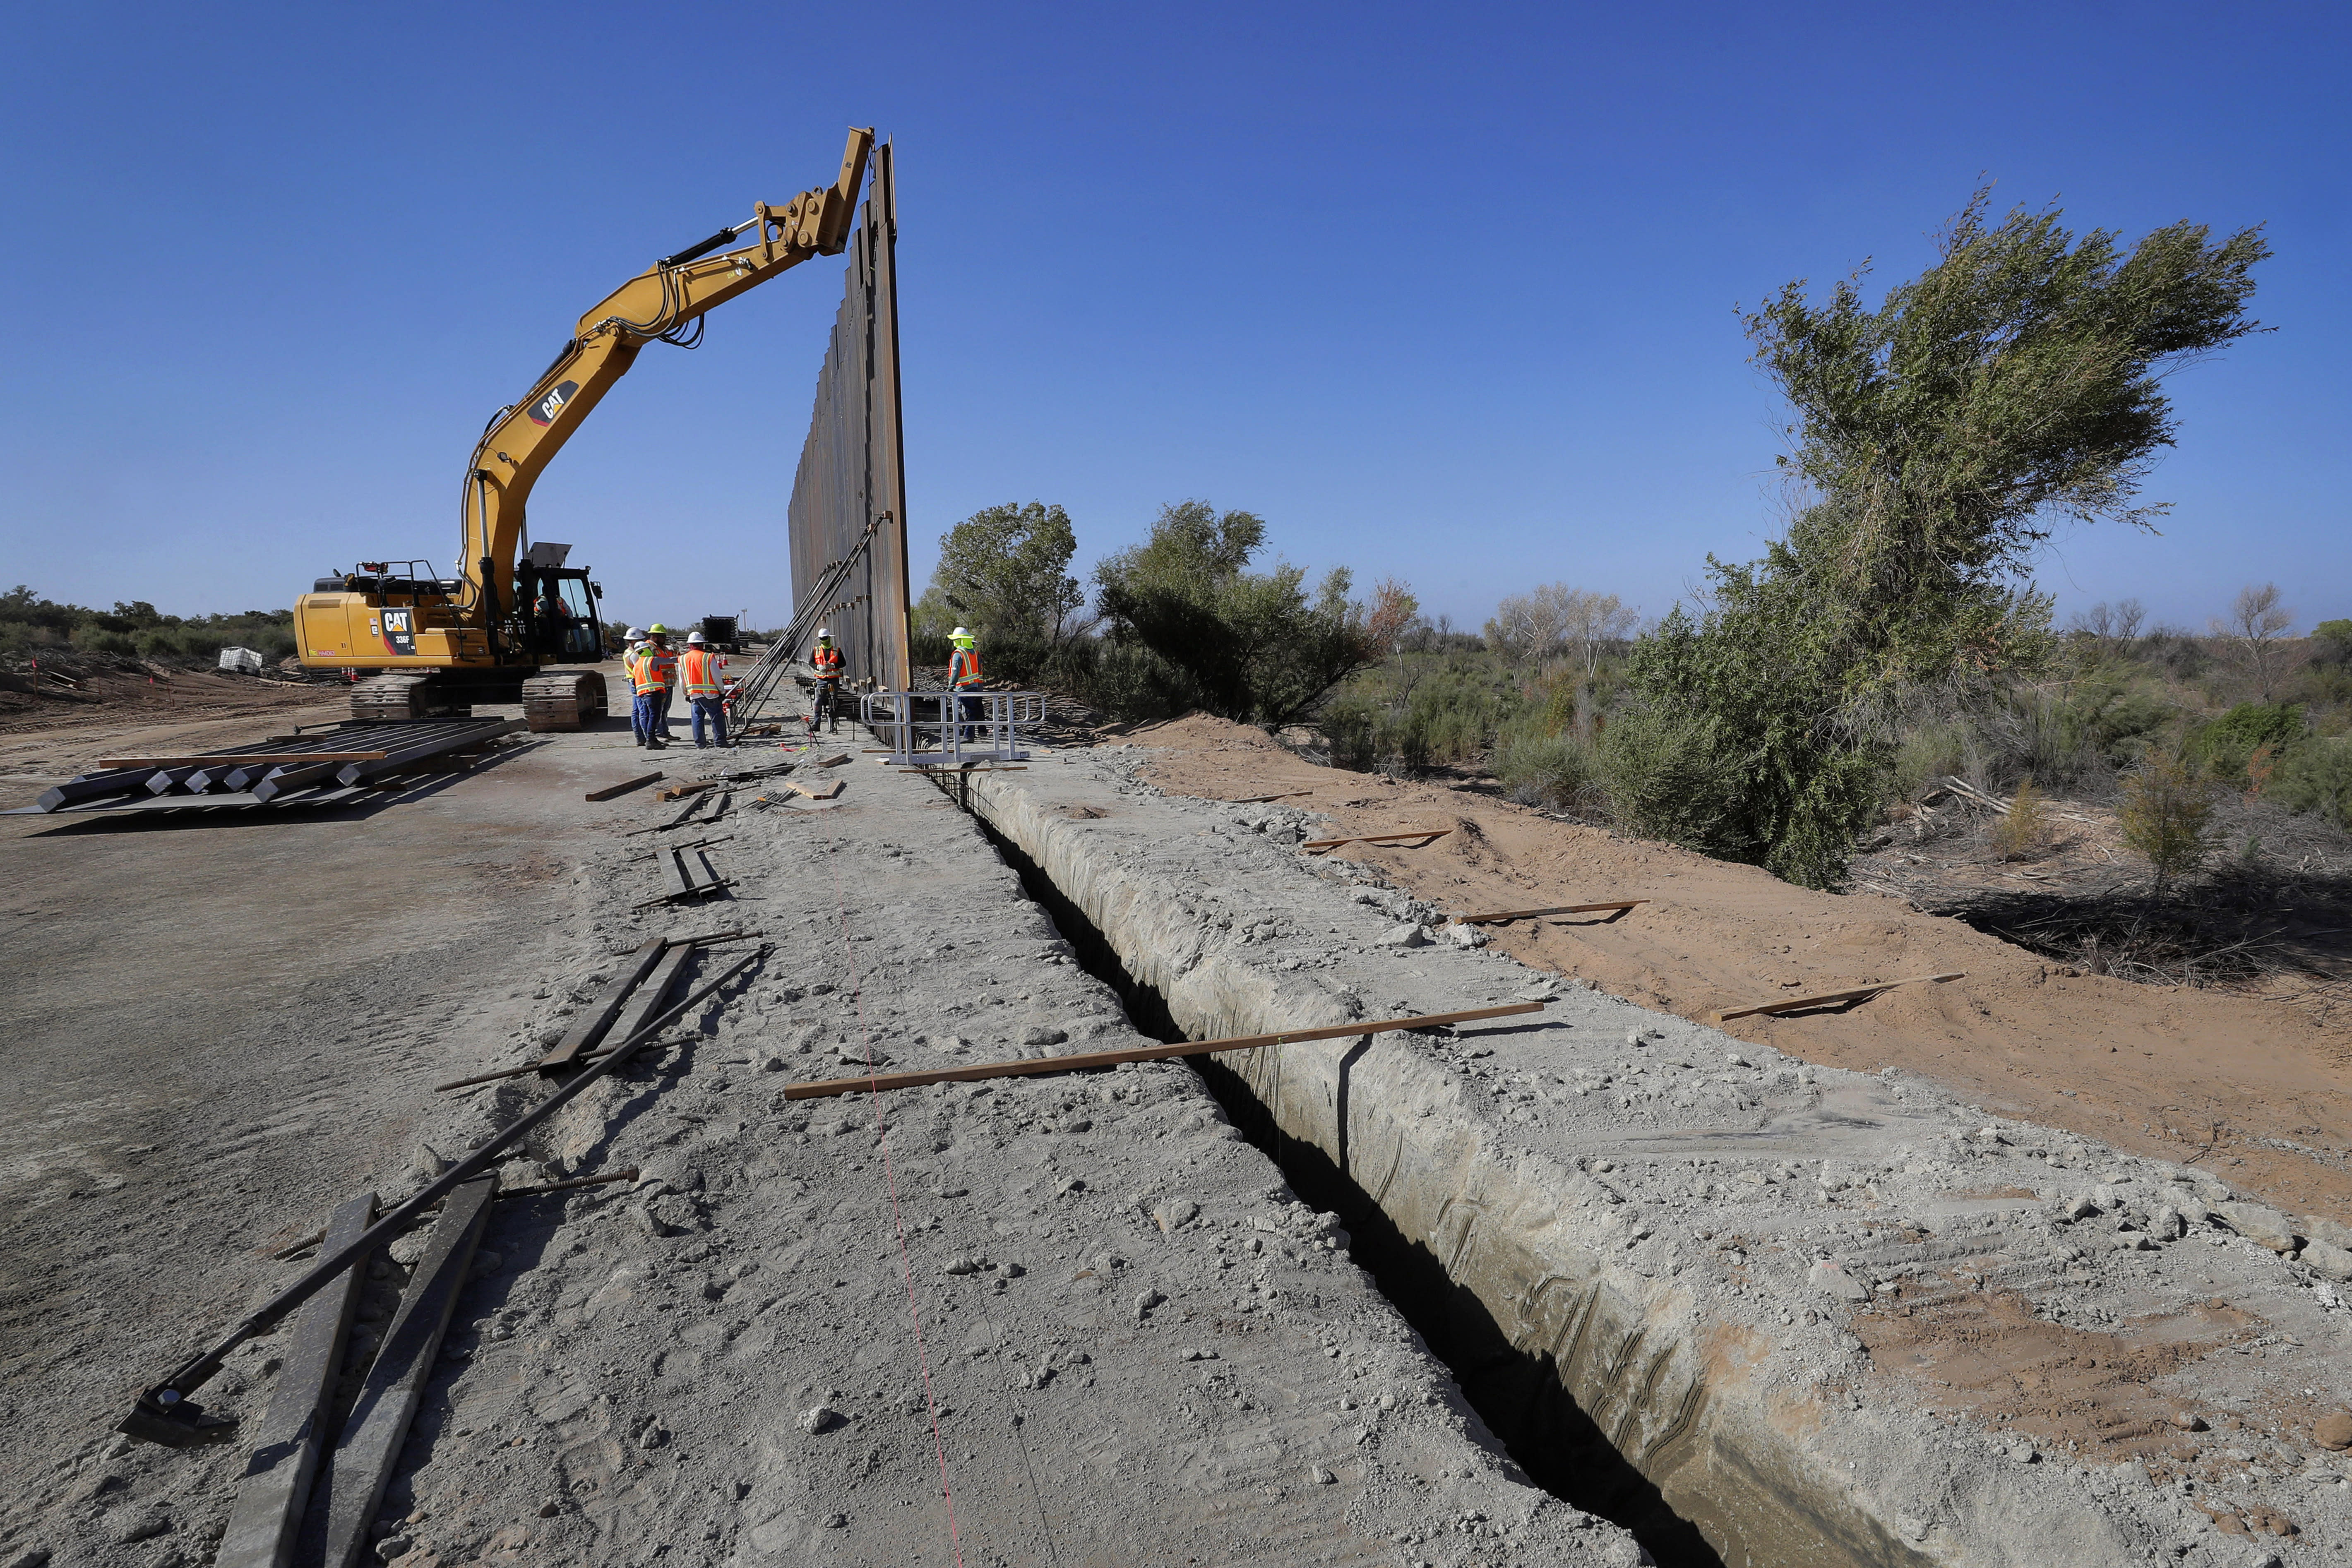 FILE - In this Sept. 10, 2019, file photo government contractors erect a section of Pentagon-funded border wall along the Colorado River, in Yuma, Ariz. The federal Bureau of Land Management said on Tuesday, July 21, 2020, it's transferred over 65 acres of public land in Arizona and New Mexico to the Army for construction of border wall infrastructure. (AP Photo/Matt York, File)